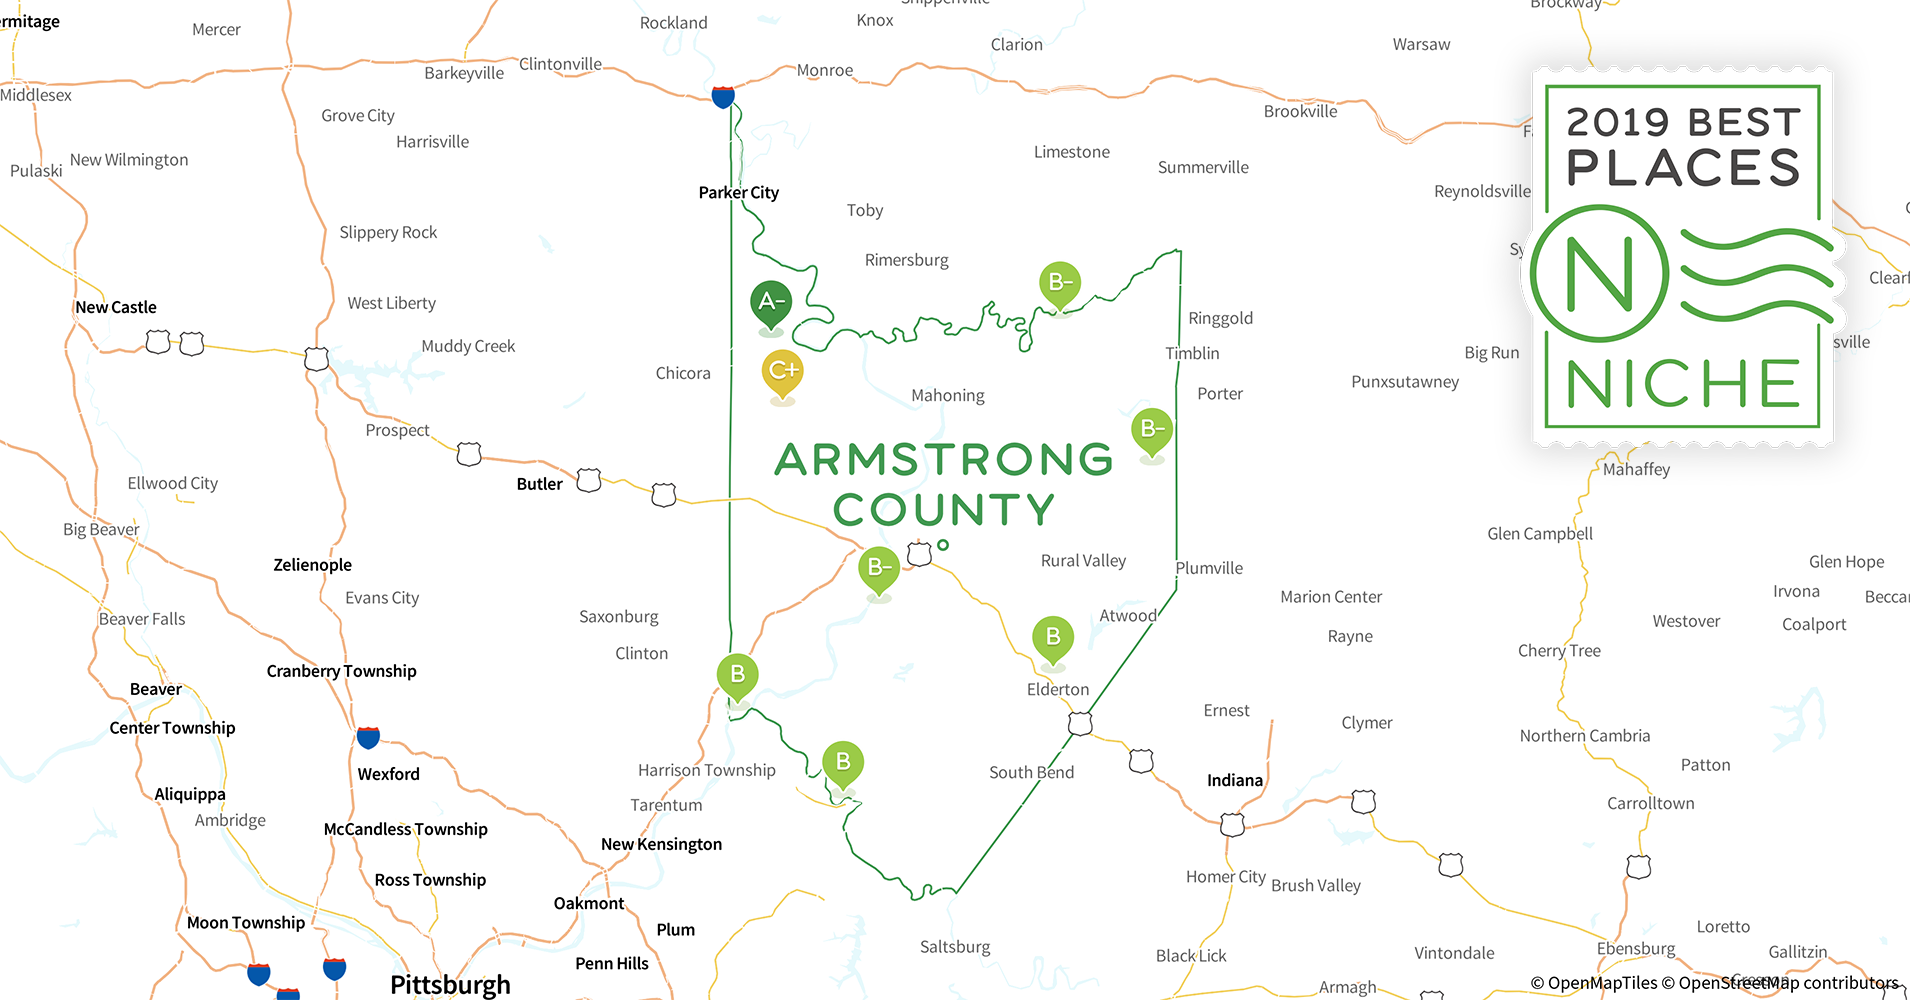 2019 Best Places to Live in Armstrong County, PA - Niche Map Of Armagh Pa on antrim pa map, smicksburg pa map, limerick pa map, marion center pa map, dublin pa map, green township pa map, norfolk pa map, new florence pa map, young township pa map, northumberland pa map, durham pa map, beaver pa map, middlesex pa map, letterkenny pa map, lucerne mines pa map, johnstown pa map, glasgow pa map, lurgan pa map, salisbury pa map, cornwall pa map,